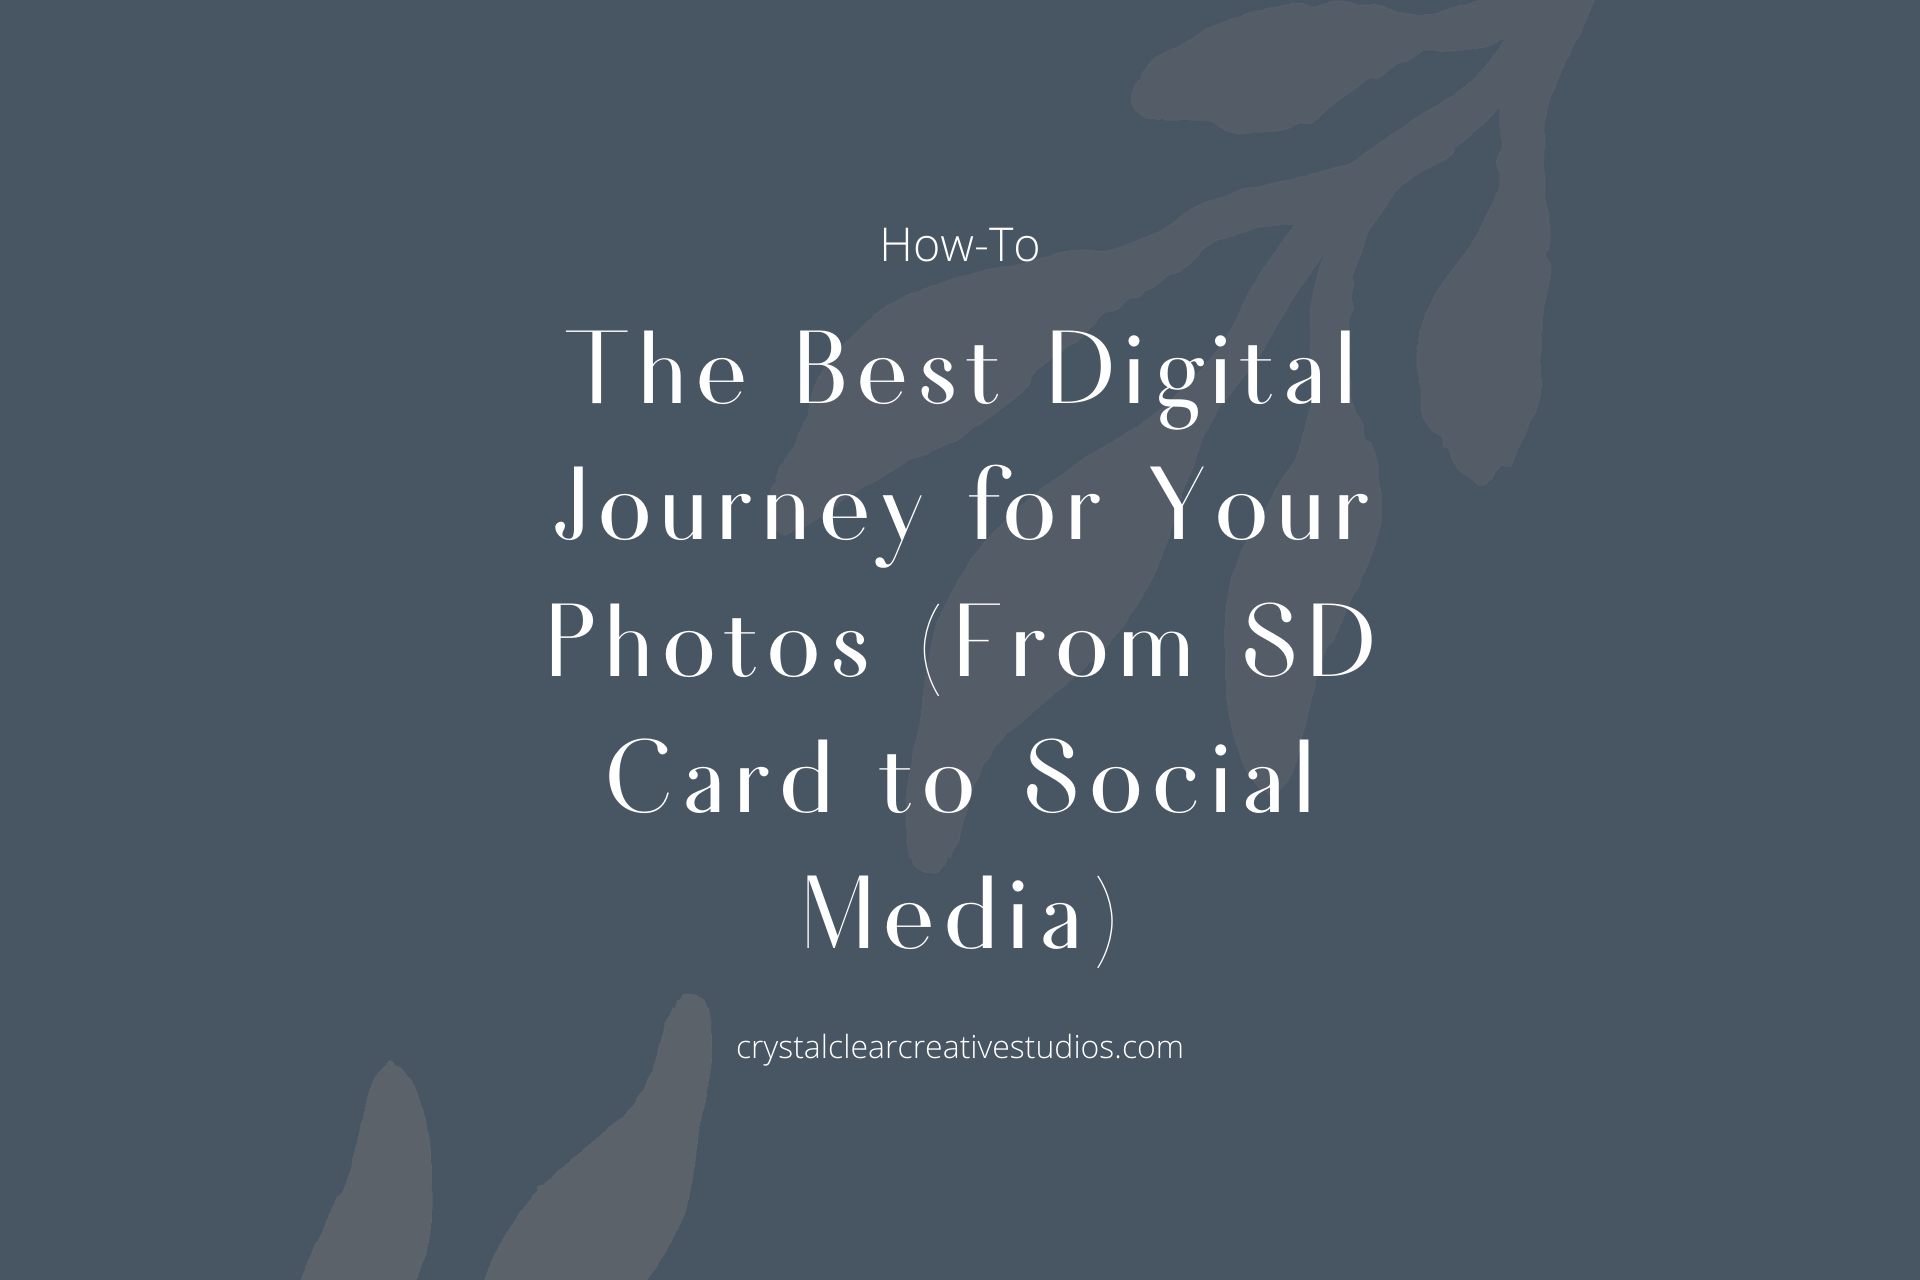 The Best Digital Journey for Your Photos (From SD Card to Social Media)